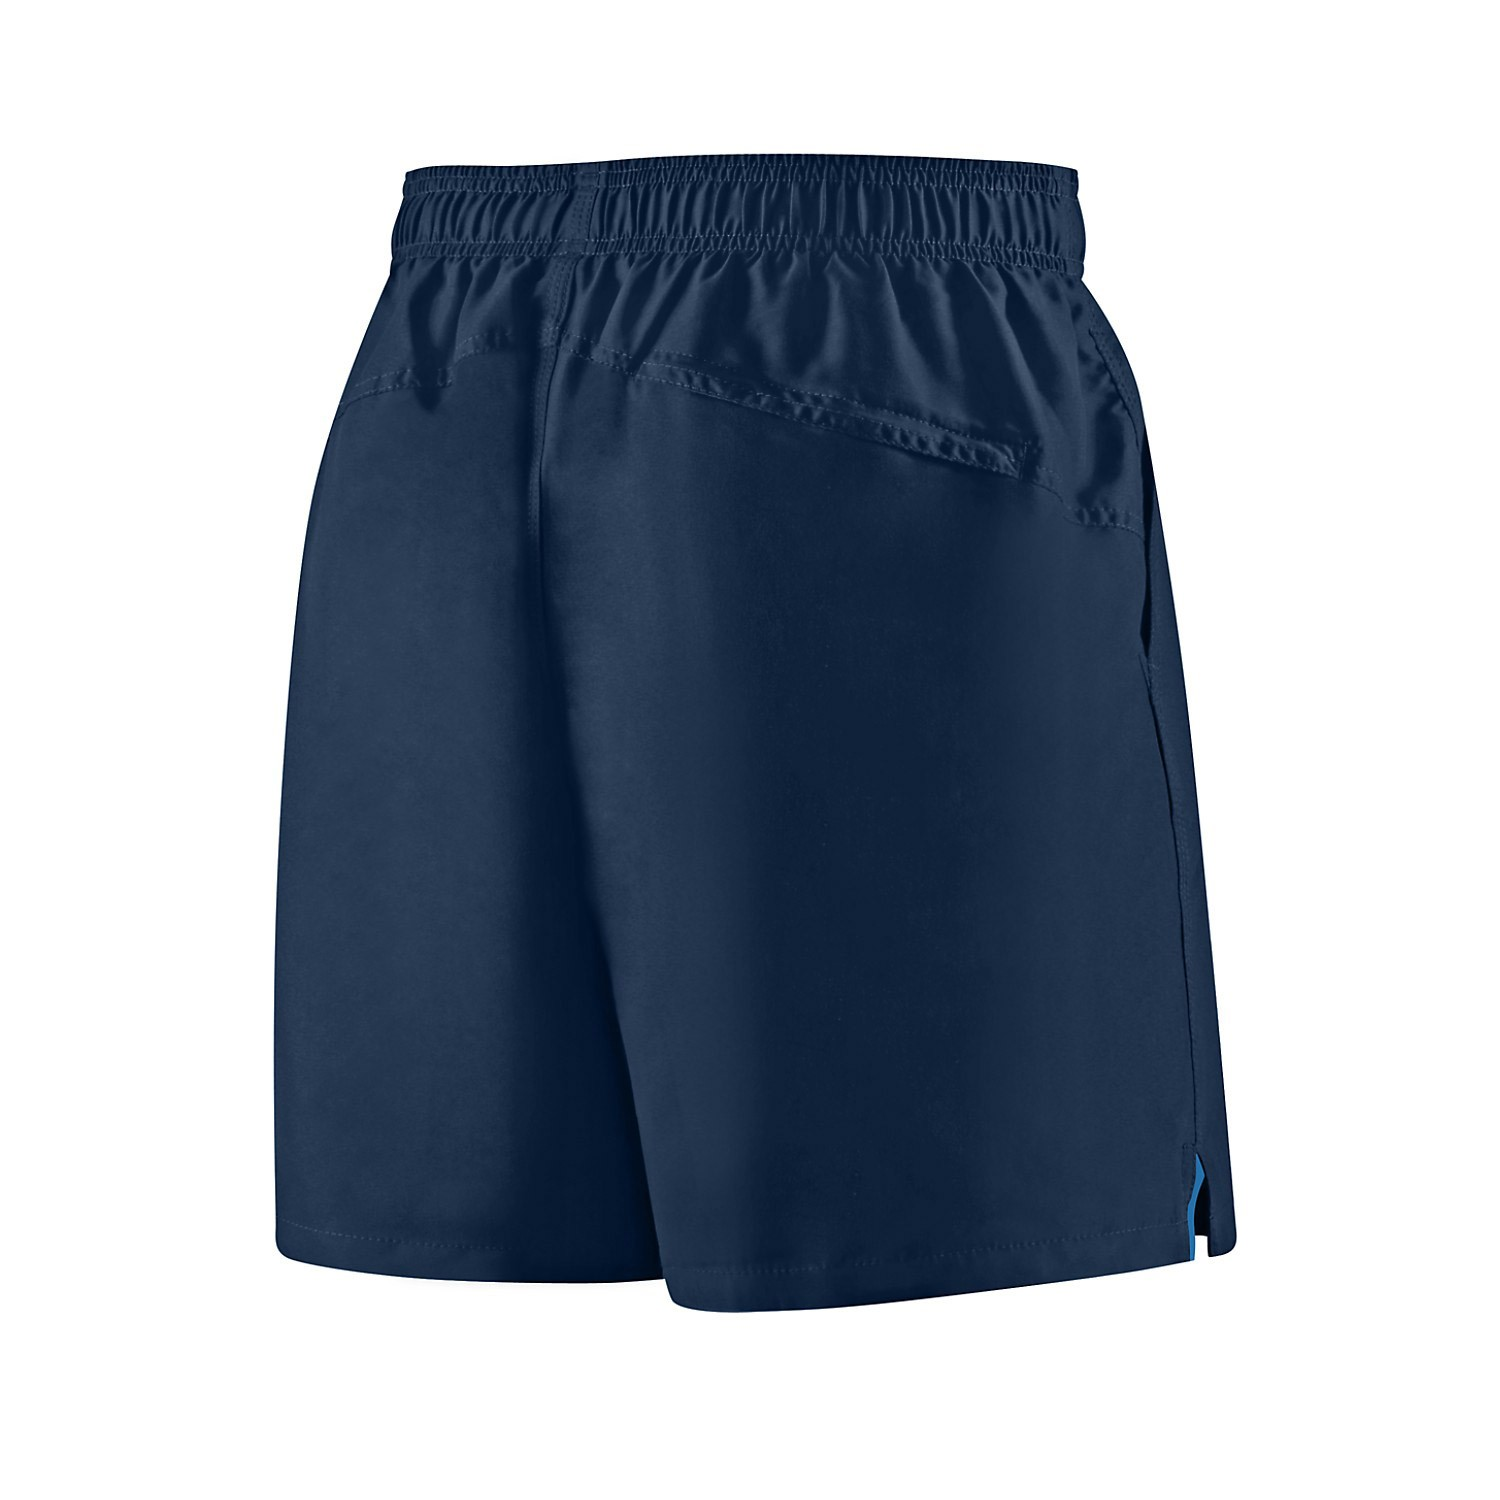 Speedo Rally Volley Shorts Navy - Back